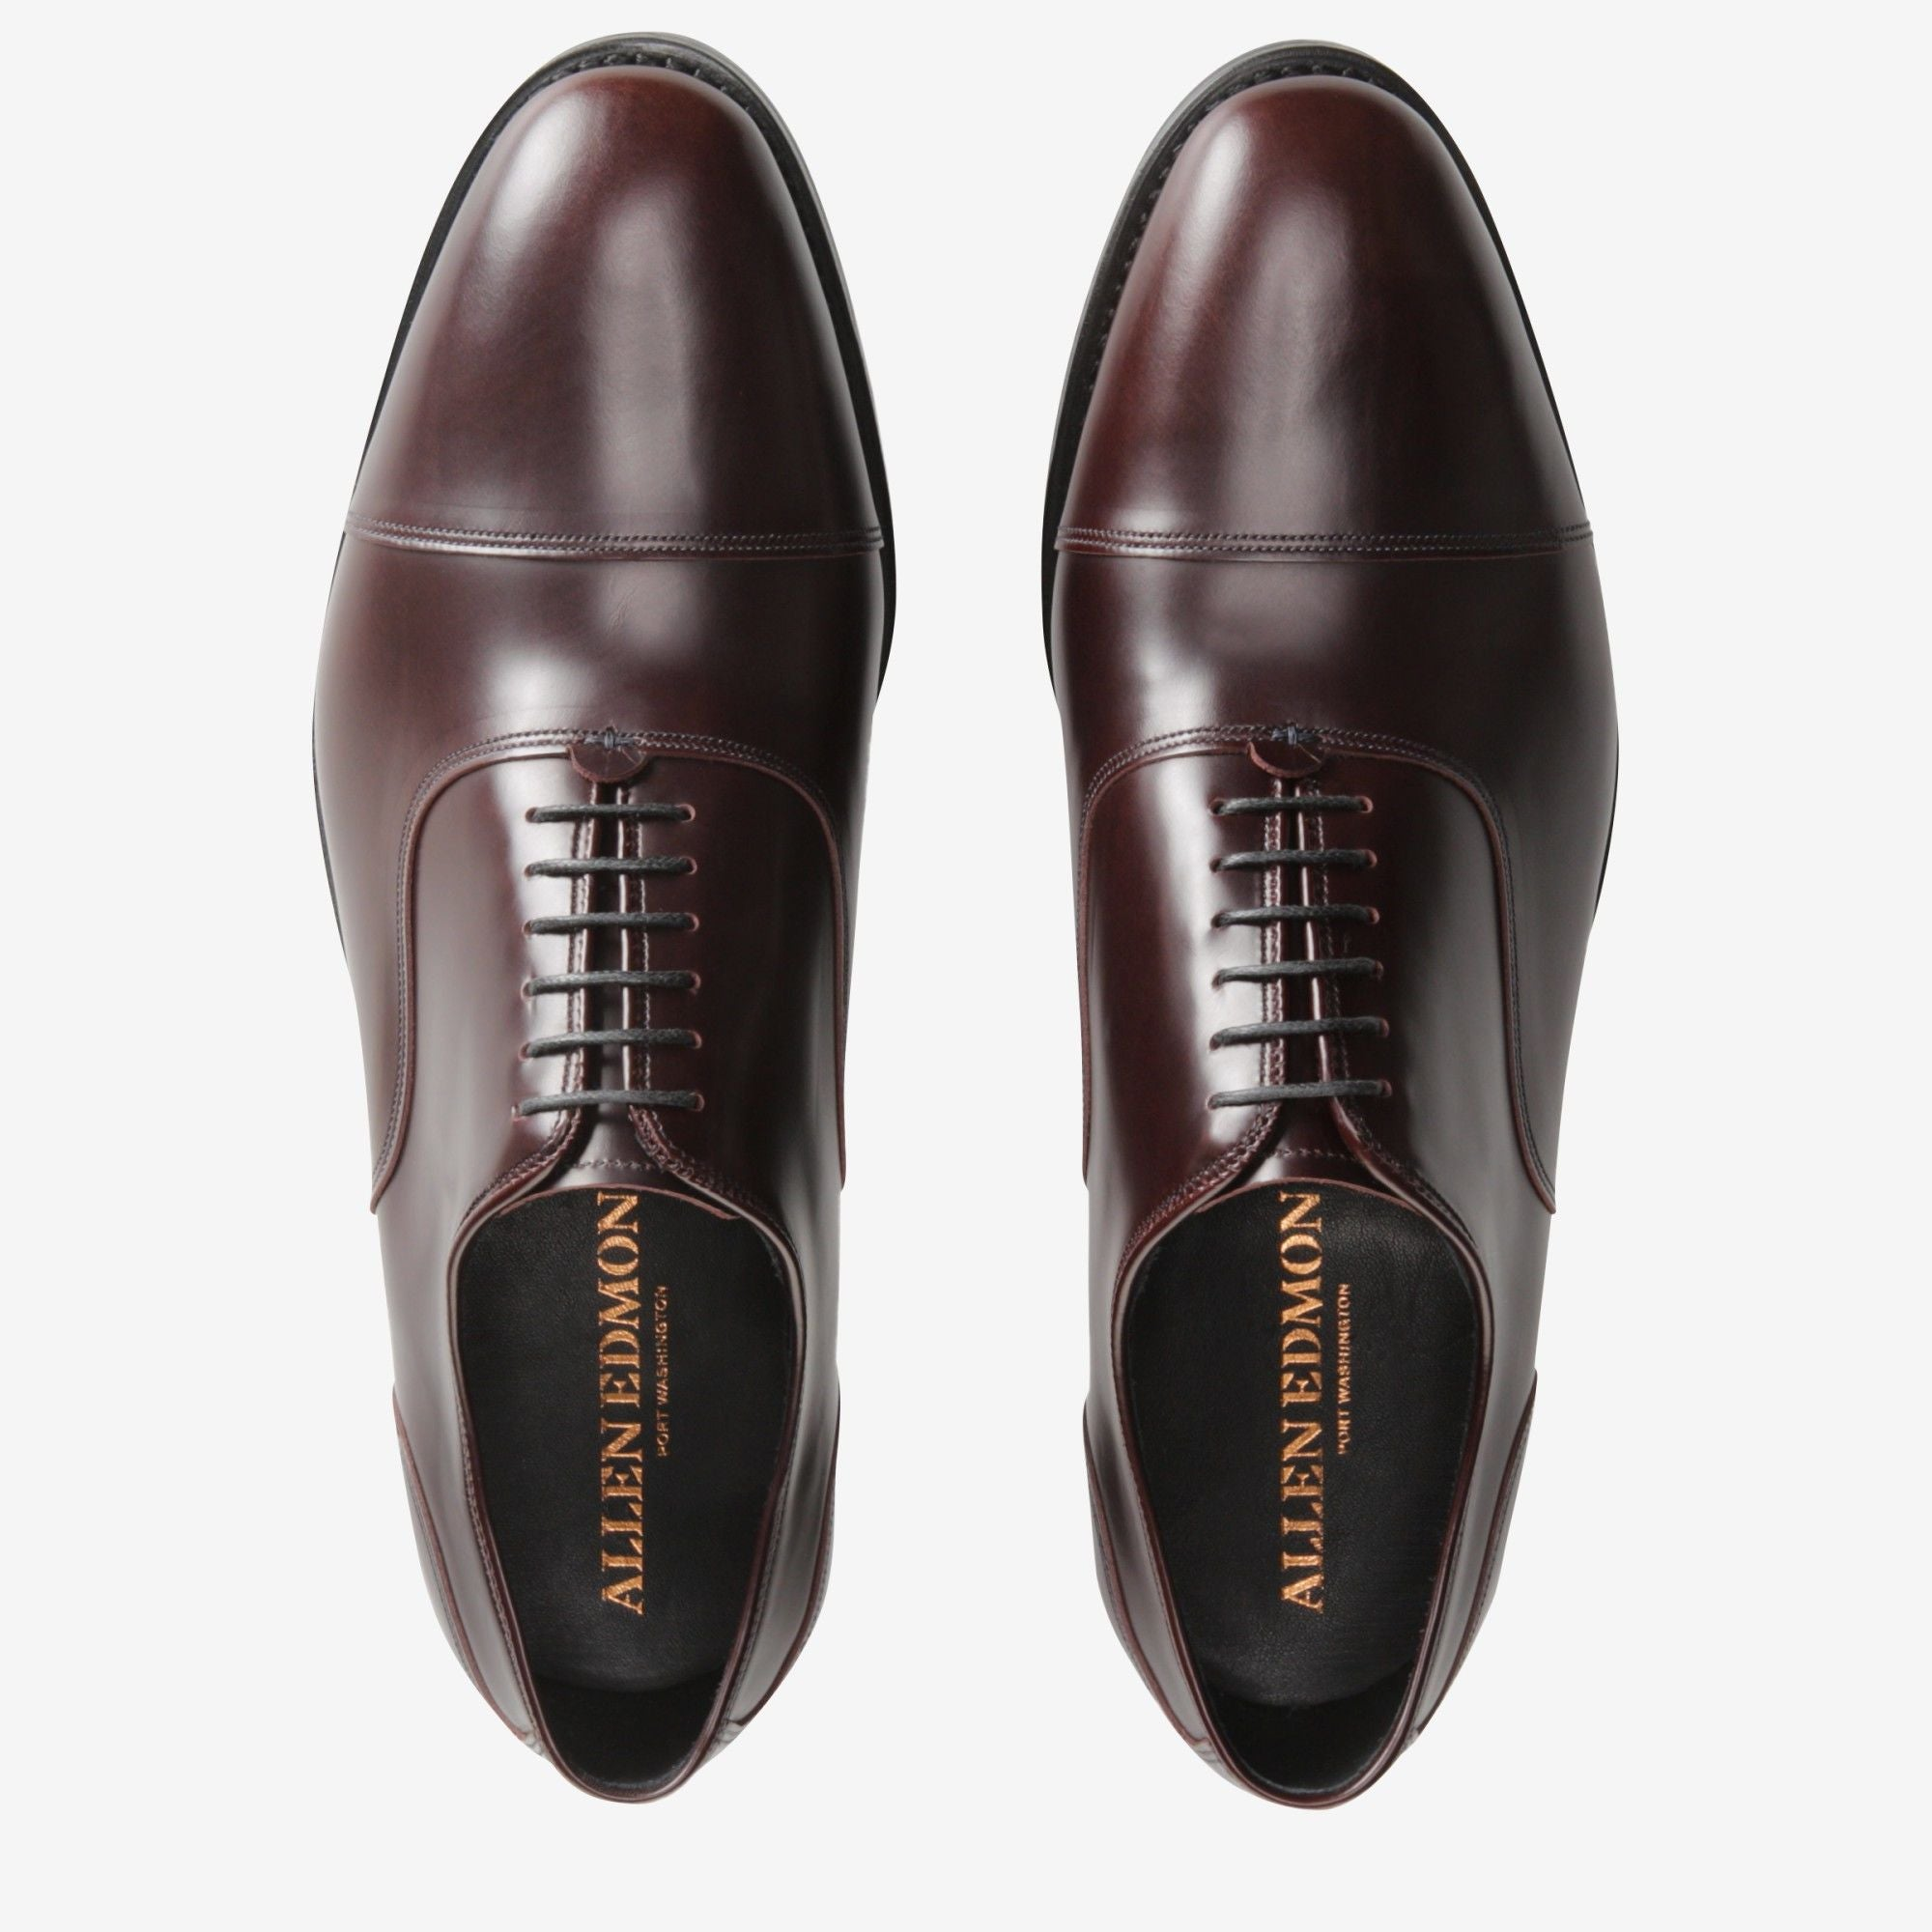 Bond Street Cap-toe Oxford